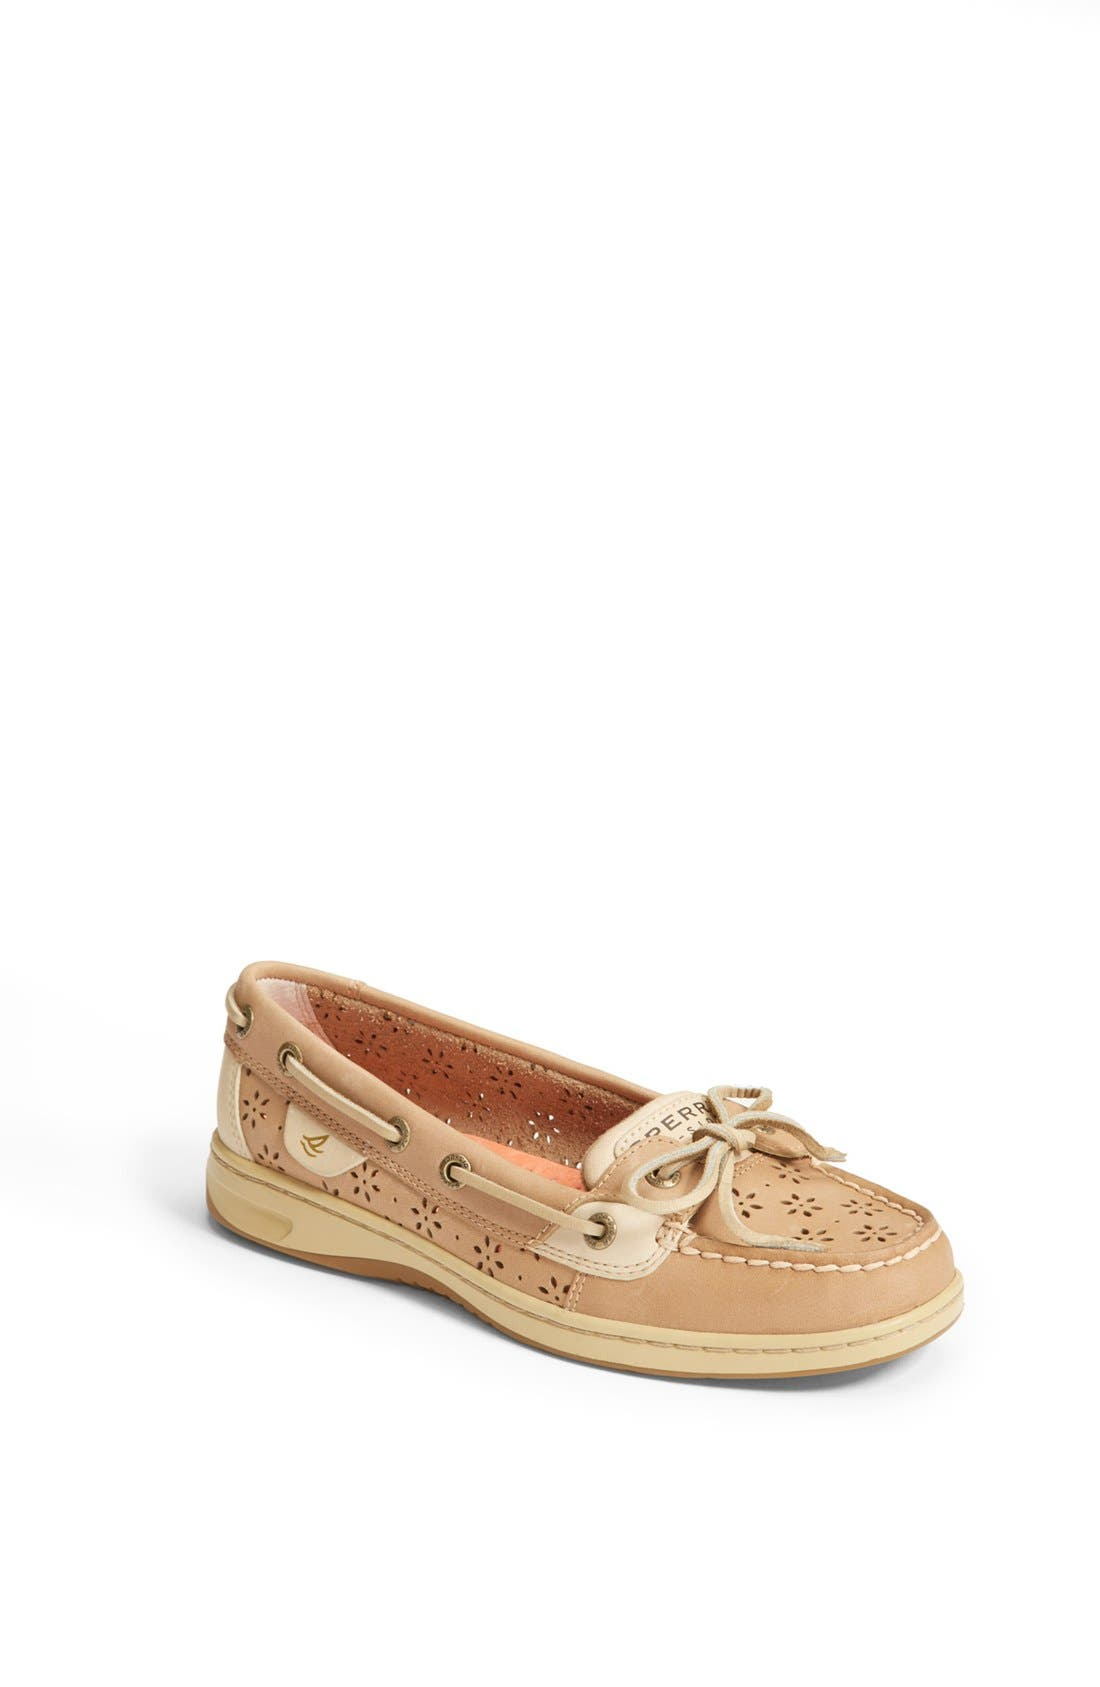 Alternate Image 1 Selected - Sperry Top-Sider® 'Angelfish' Boat Shoe